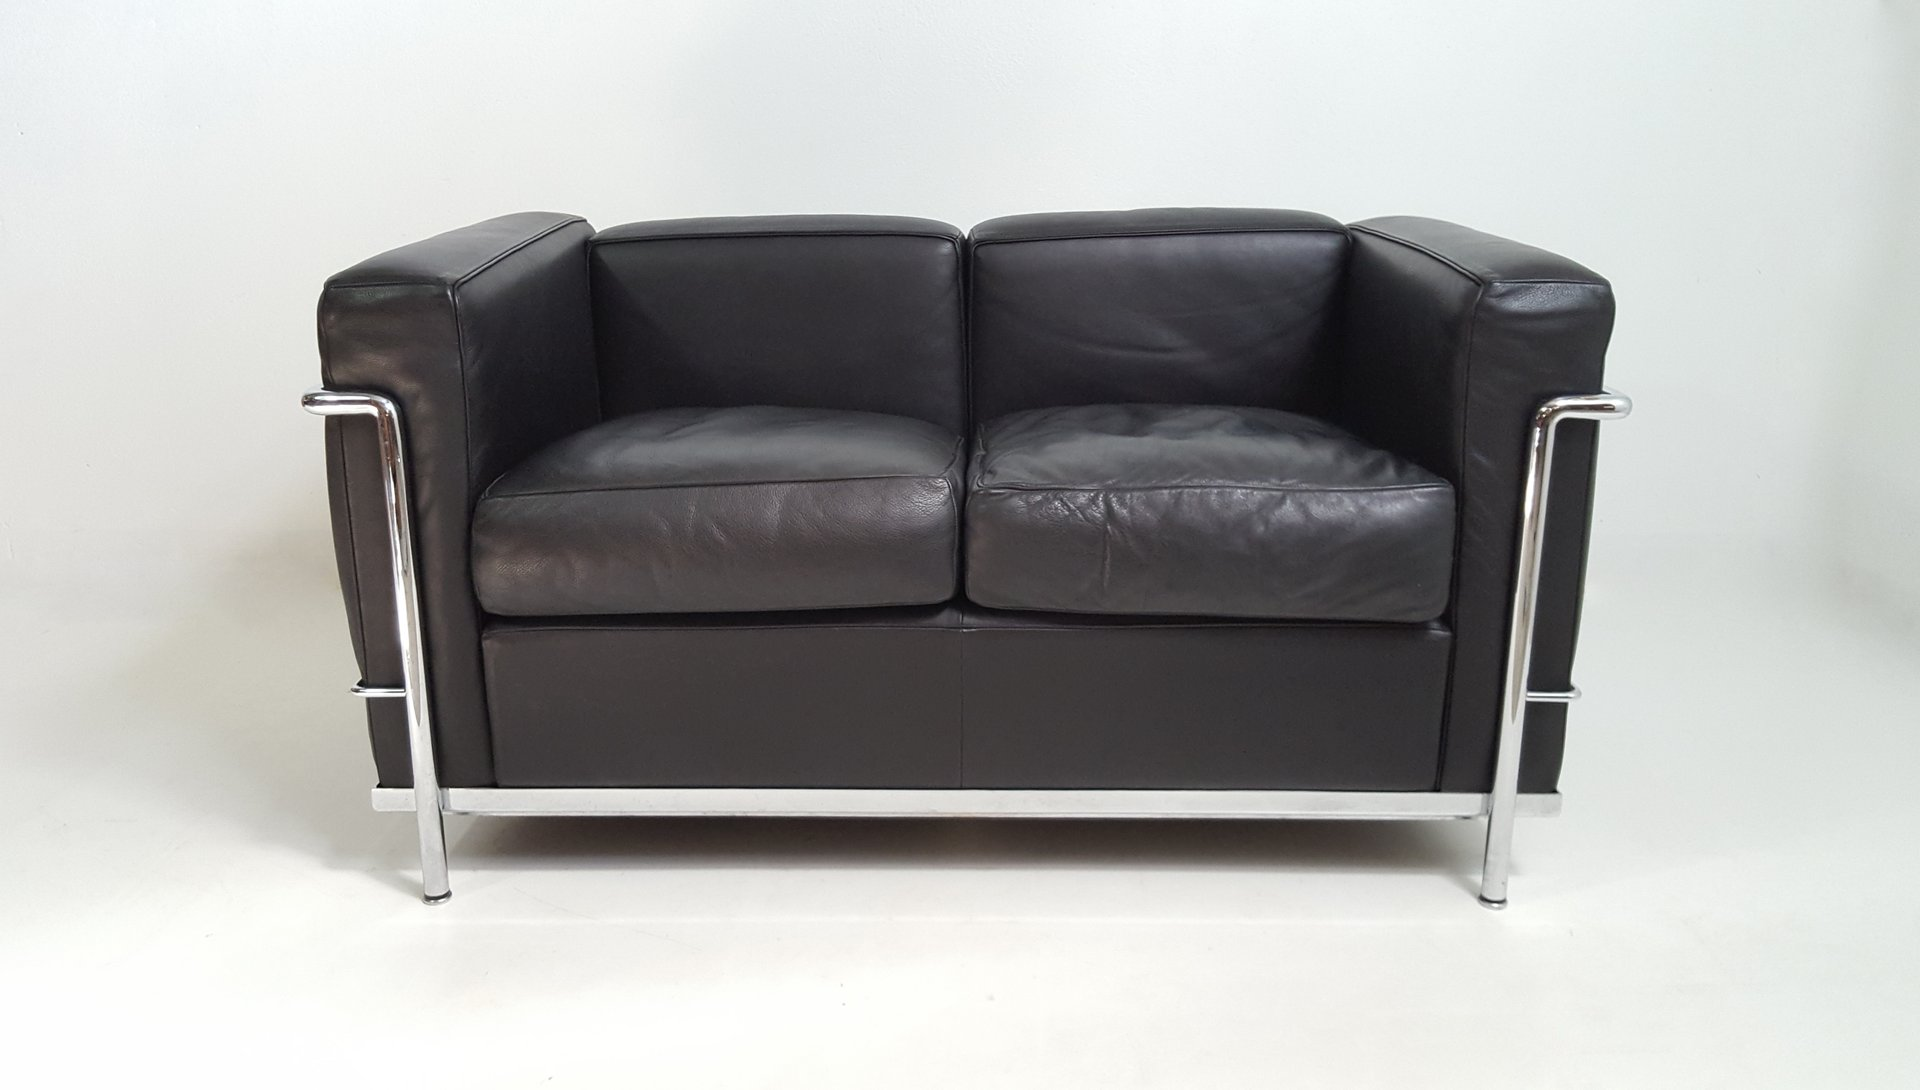 Vintage lc2 black leather sofa by le corbusier for cassina for sale at pamono Le corbusier lc2 sofa